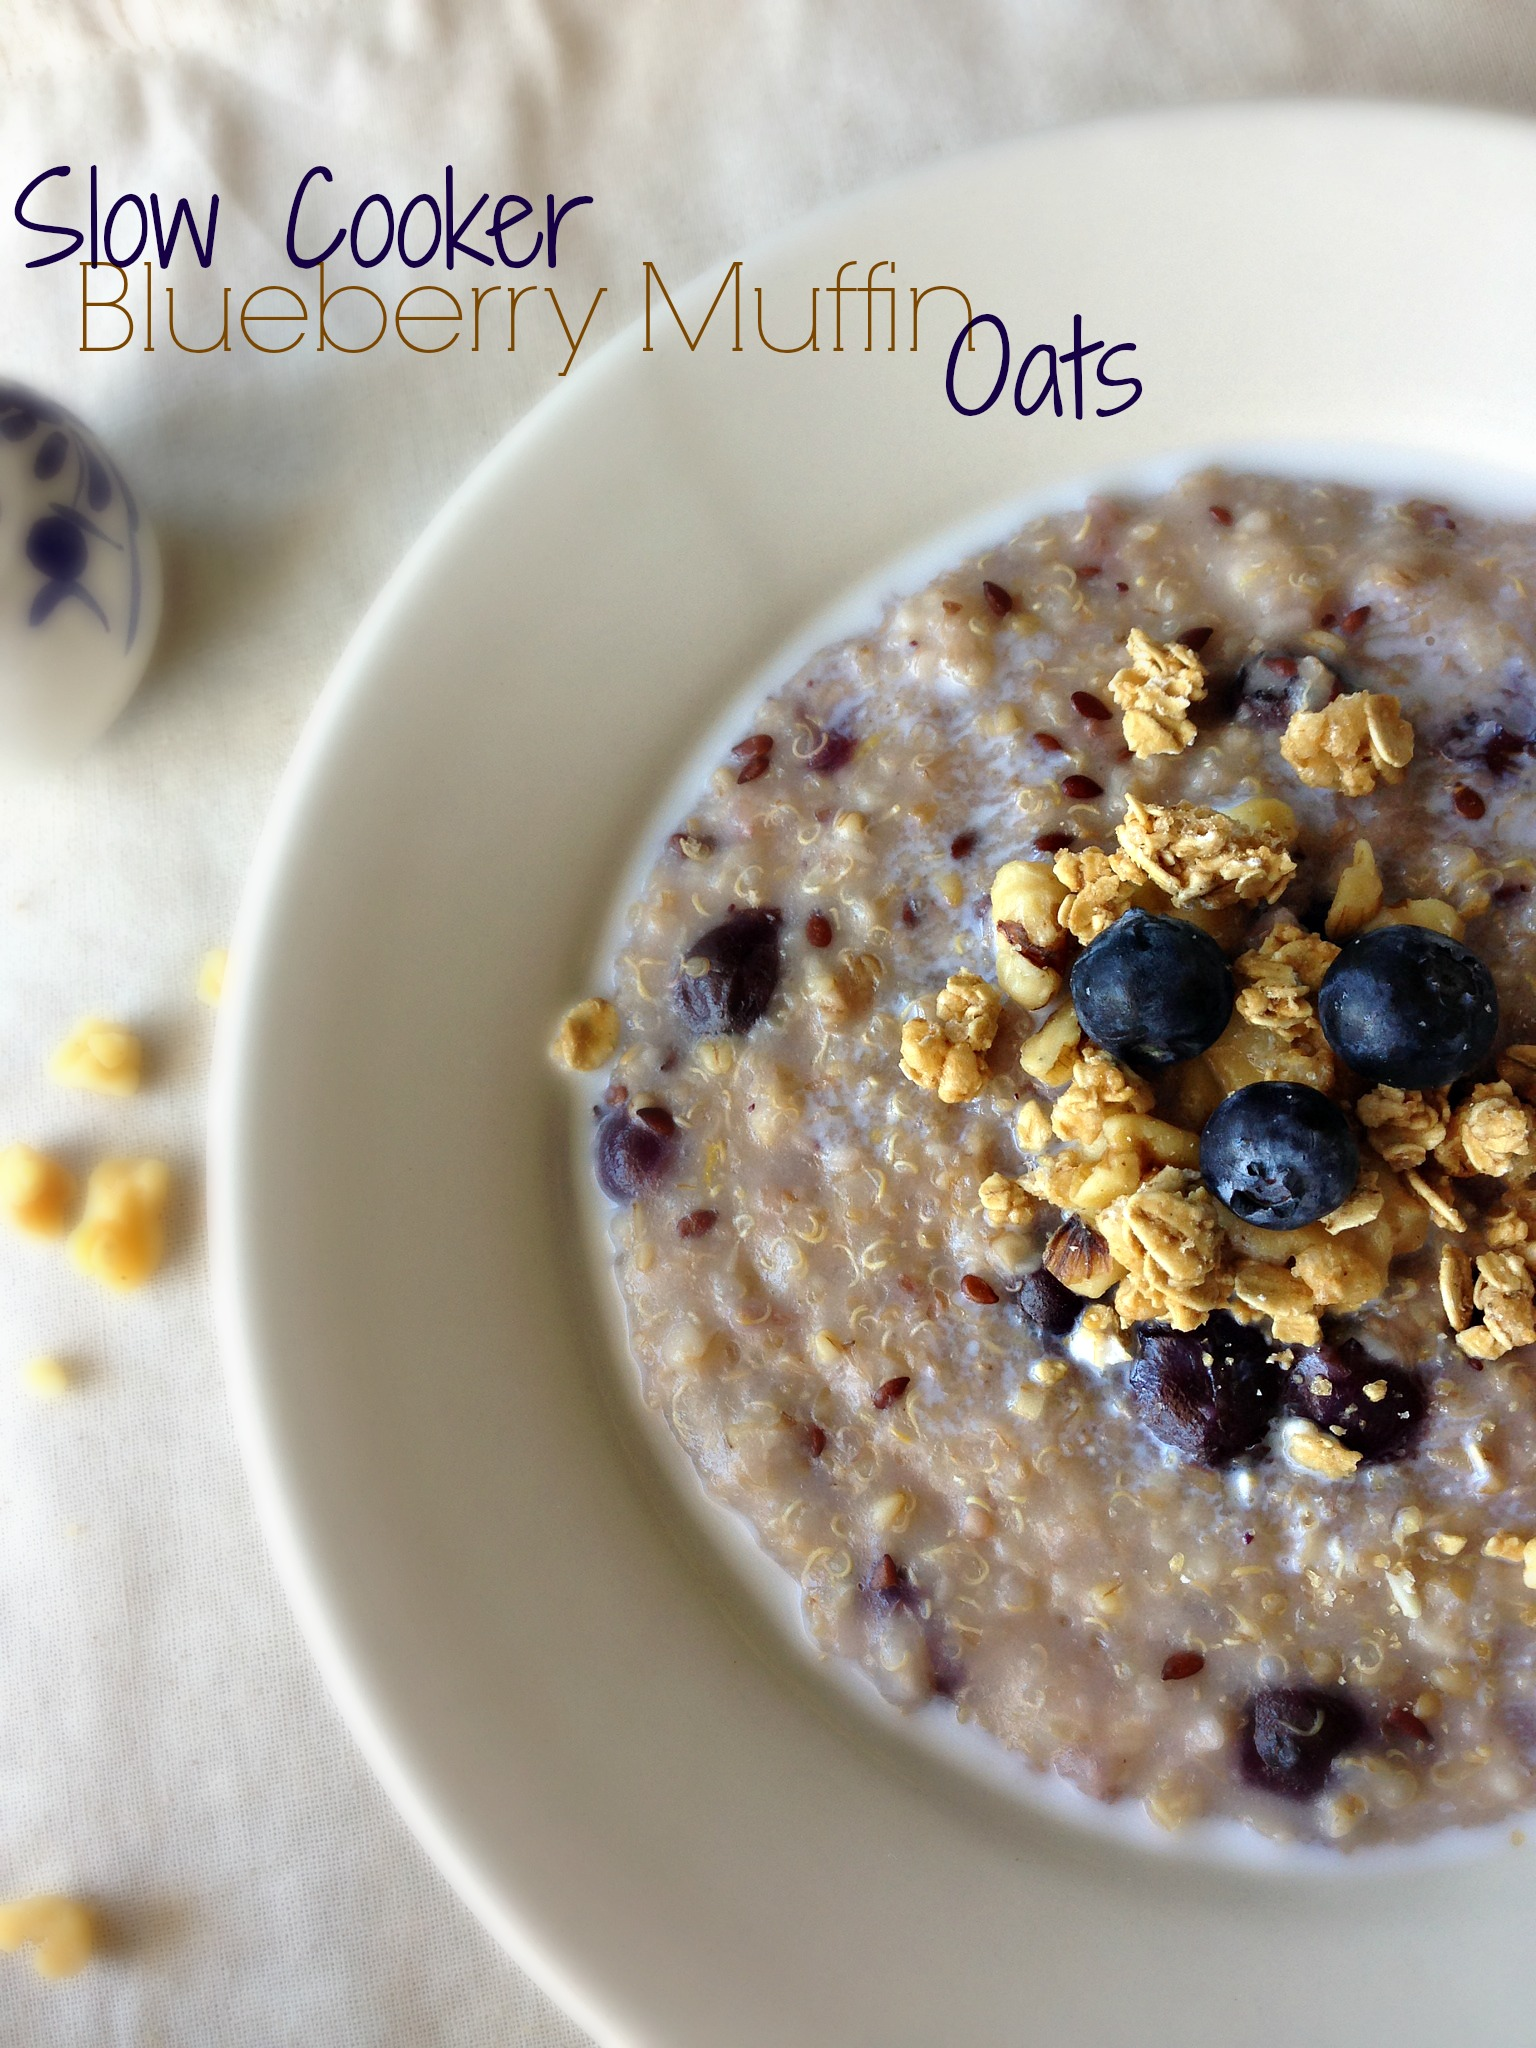 Slow Cooker Blueberry Muffin Oats